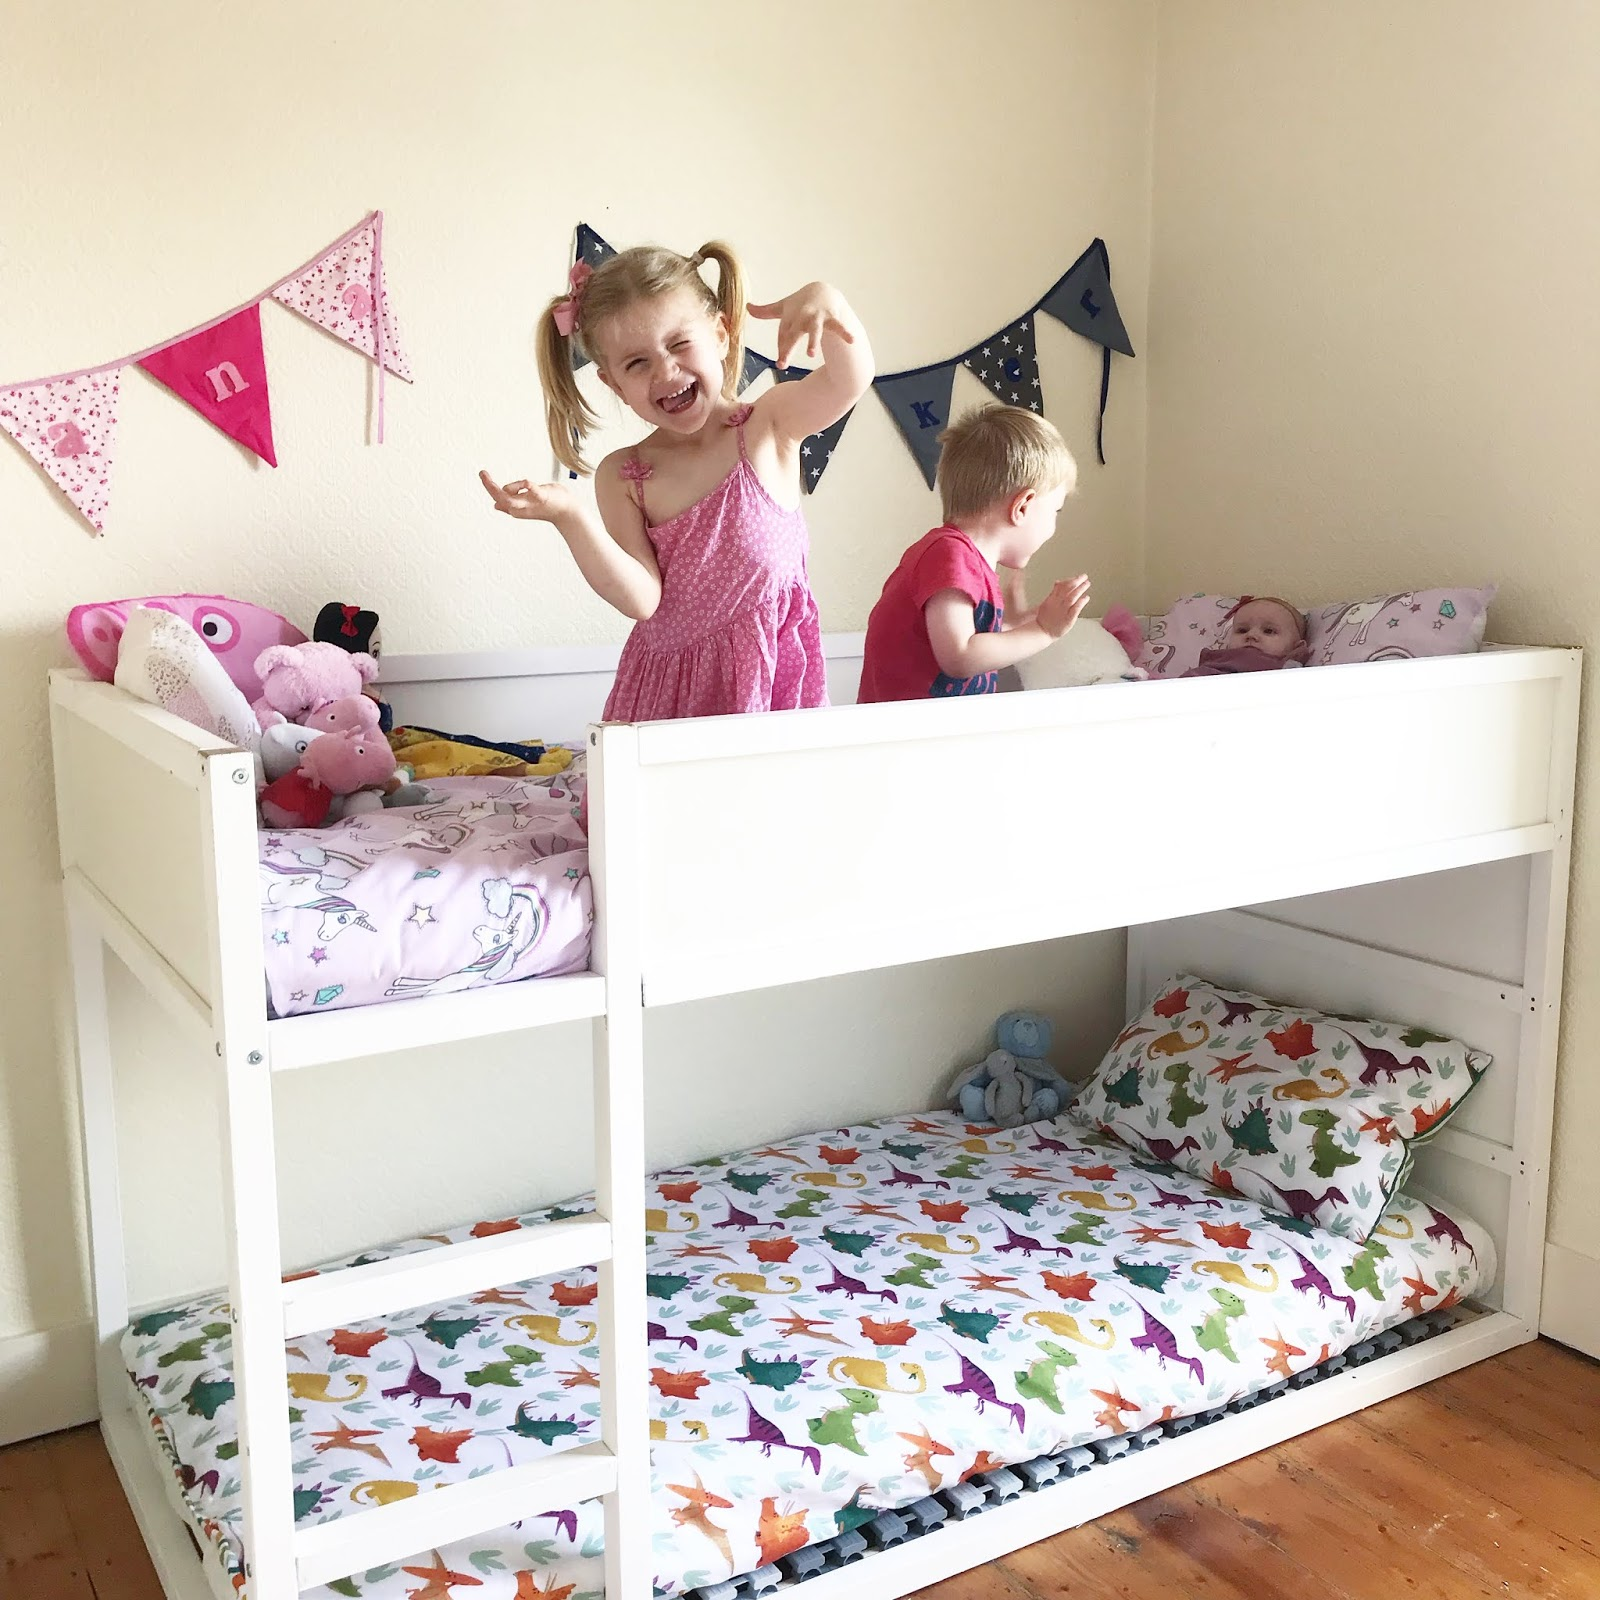 Full Size of Kura Hack Simple Ikea Bunk Bed The Perfect Beds For Under Wohnzimmer Kura Hack